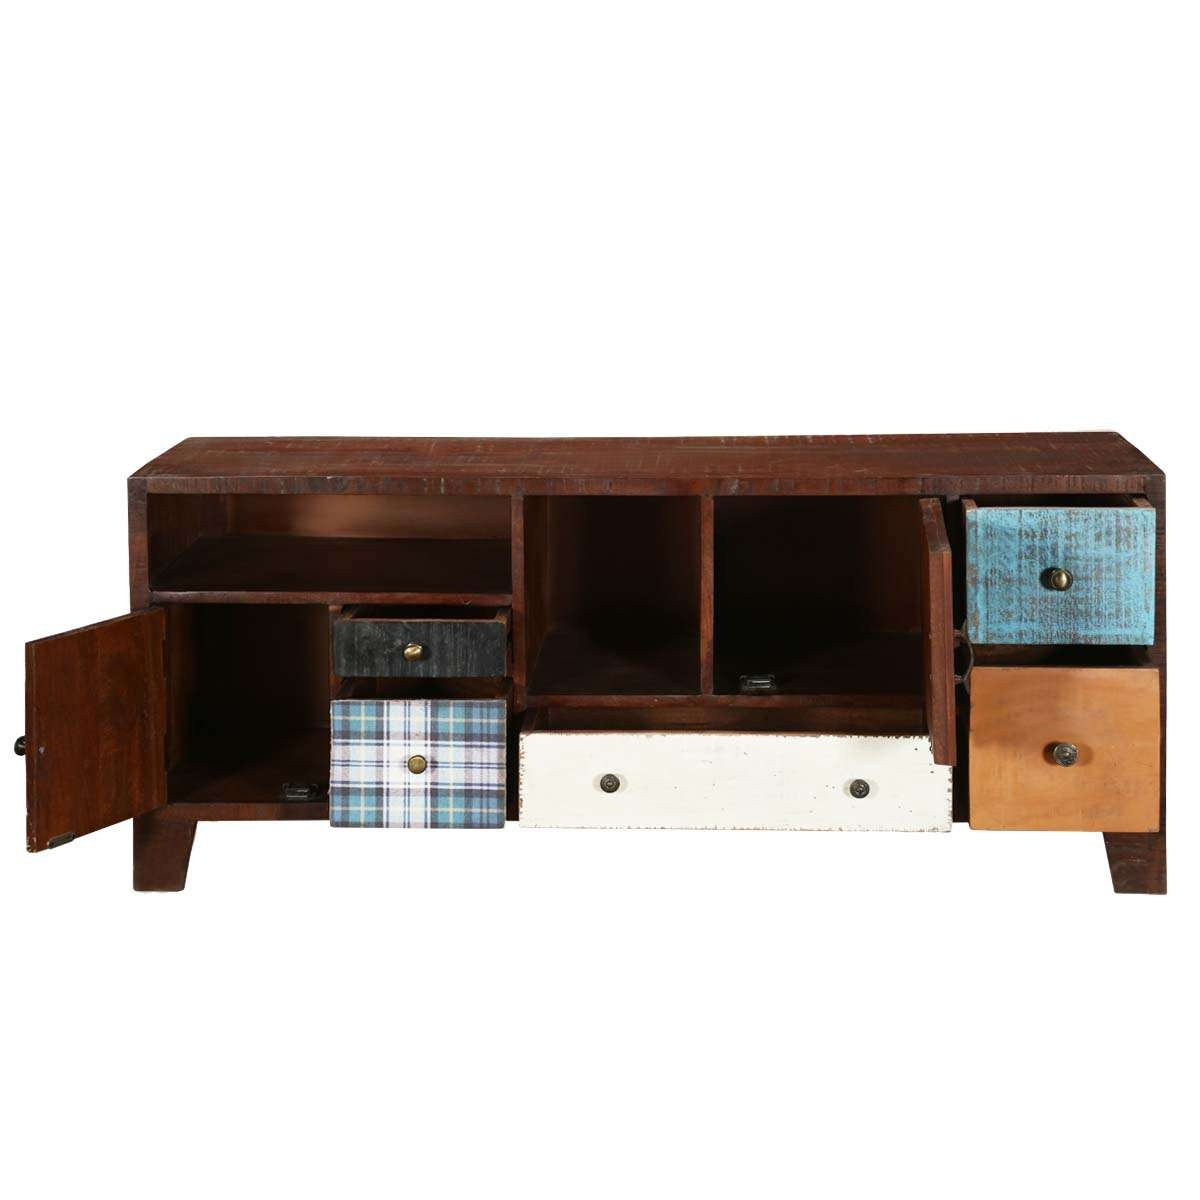 Highest Rated Pop Up Tv Stand For Bedroom, Wooden Wardrobe Modern Within Pop Up Tv Stands (View 8 of 20)